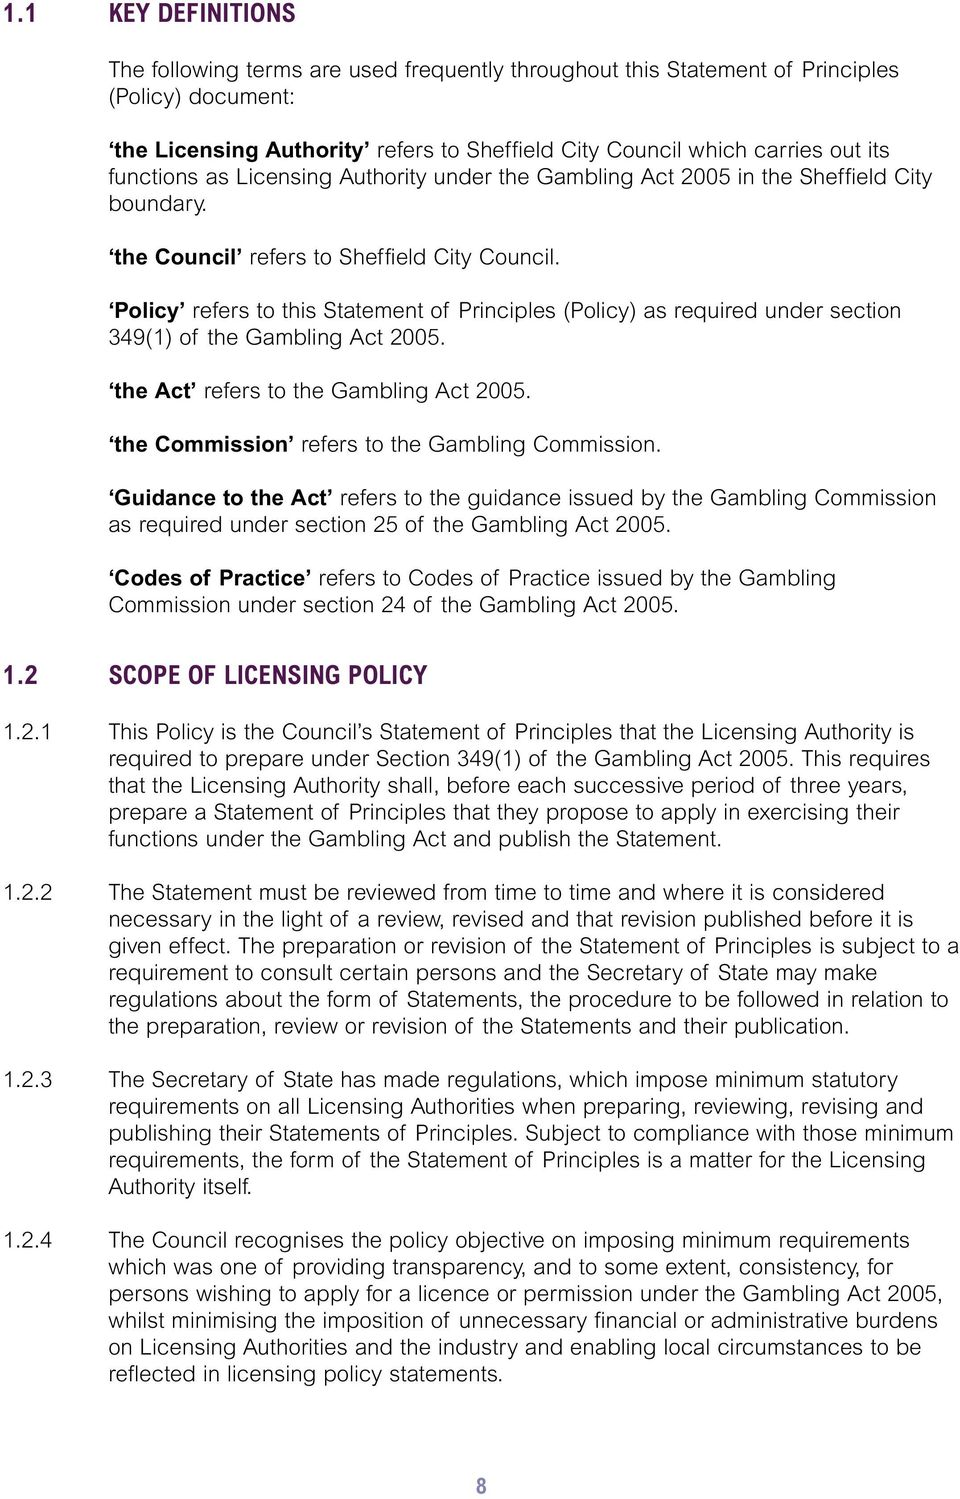 Policy refers to this Statement of Principles (Policy) as required under section 349(1) of the Gambling Act 2005. the Act refers to the Gambling Act 2005.